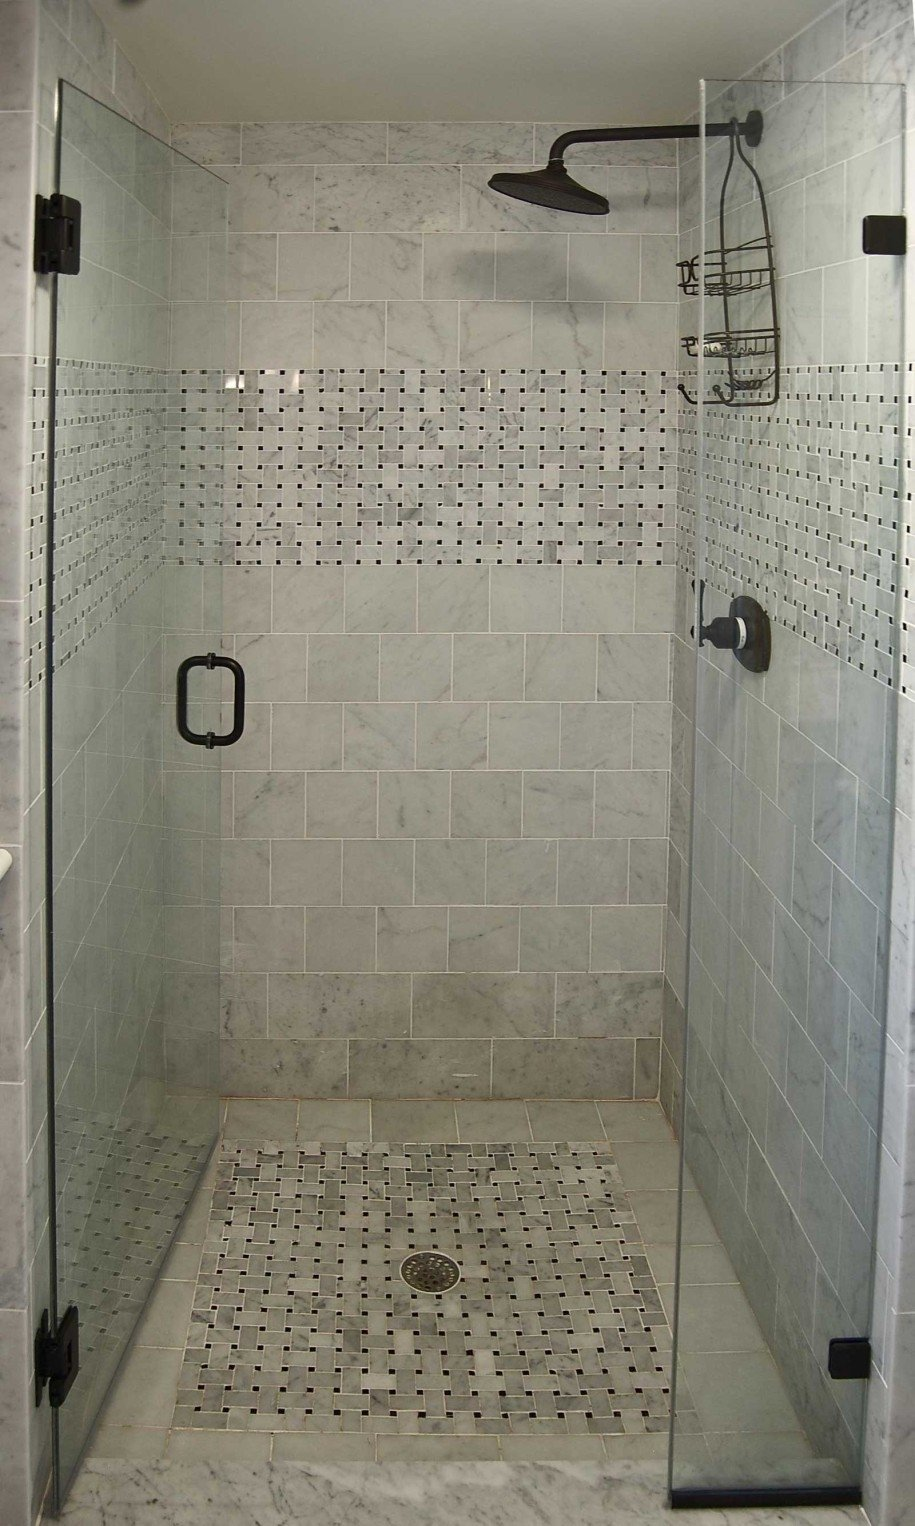 10 Fantastic Tile Shower Ideas For Small Bathrooms shower design ideas small bathroom large and beautiful photos 2021